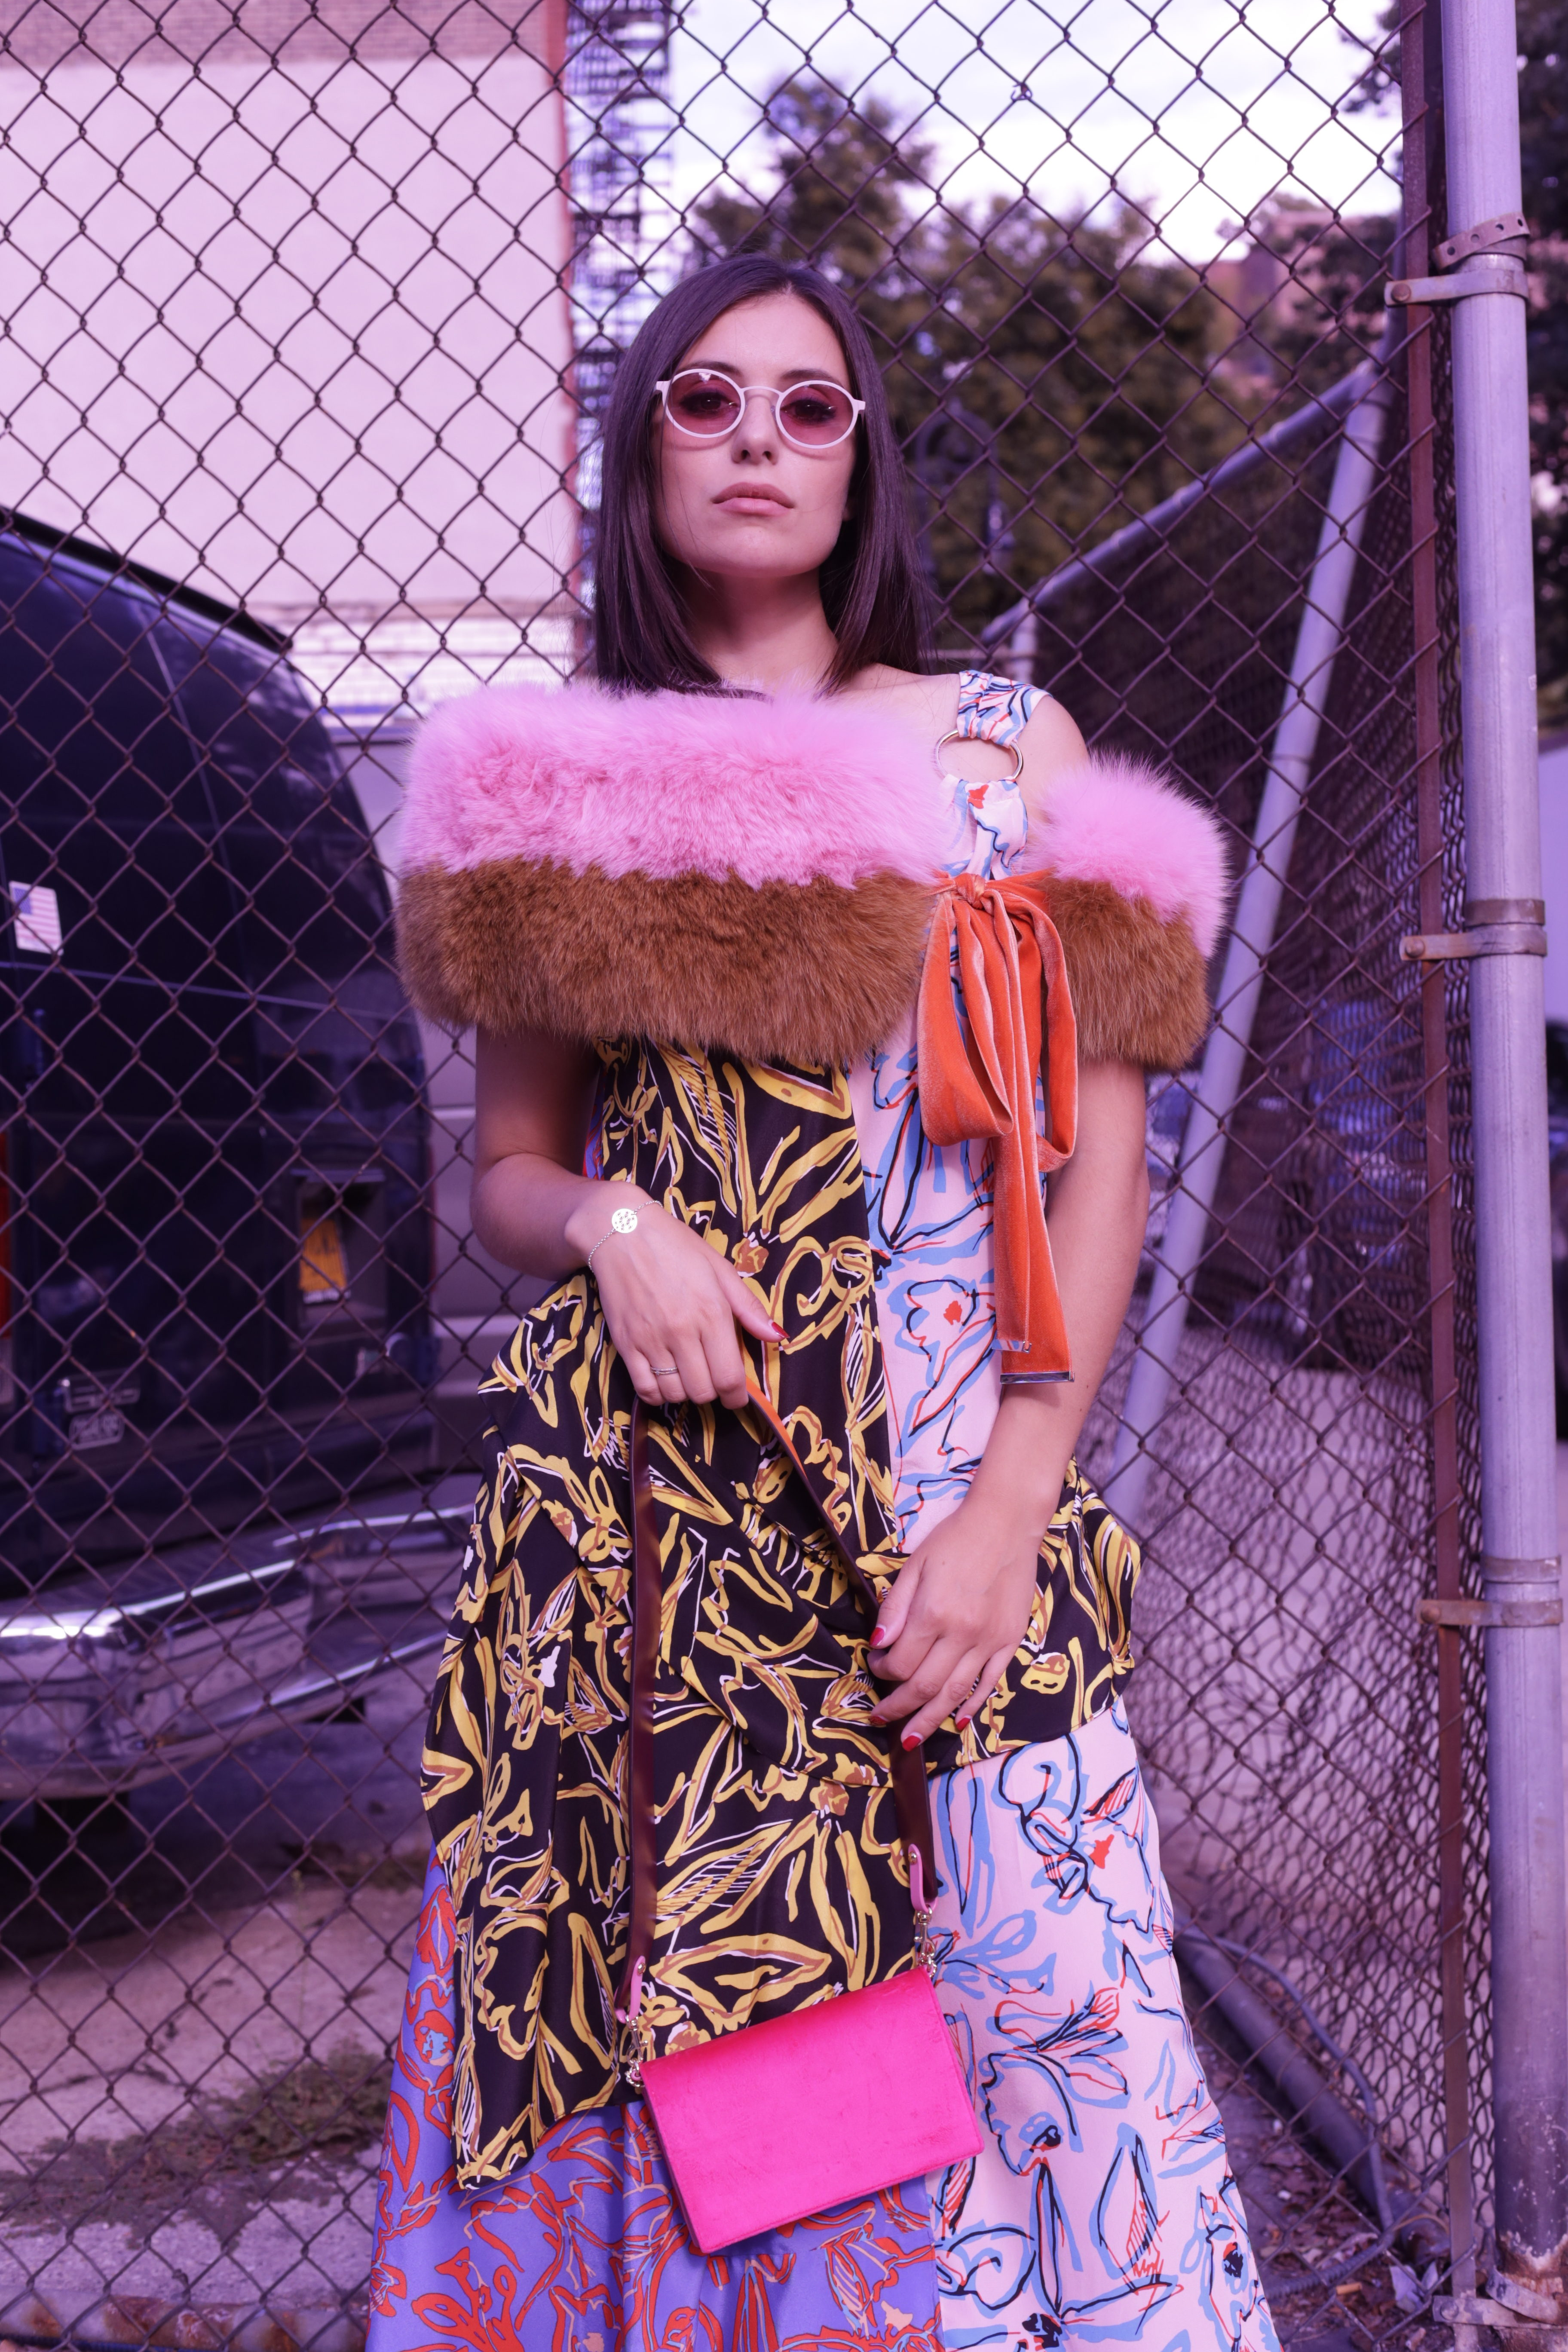 Actress and influencer Marta Pozzan wearing a total DVF look during NYFW.